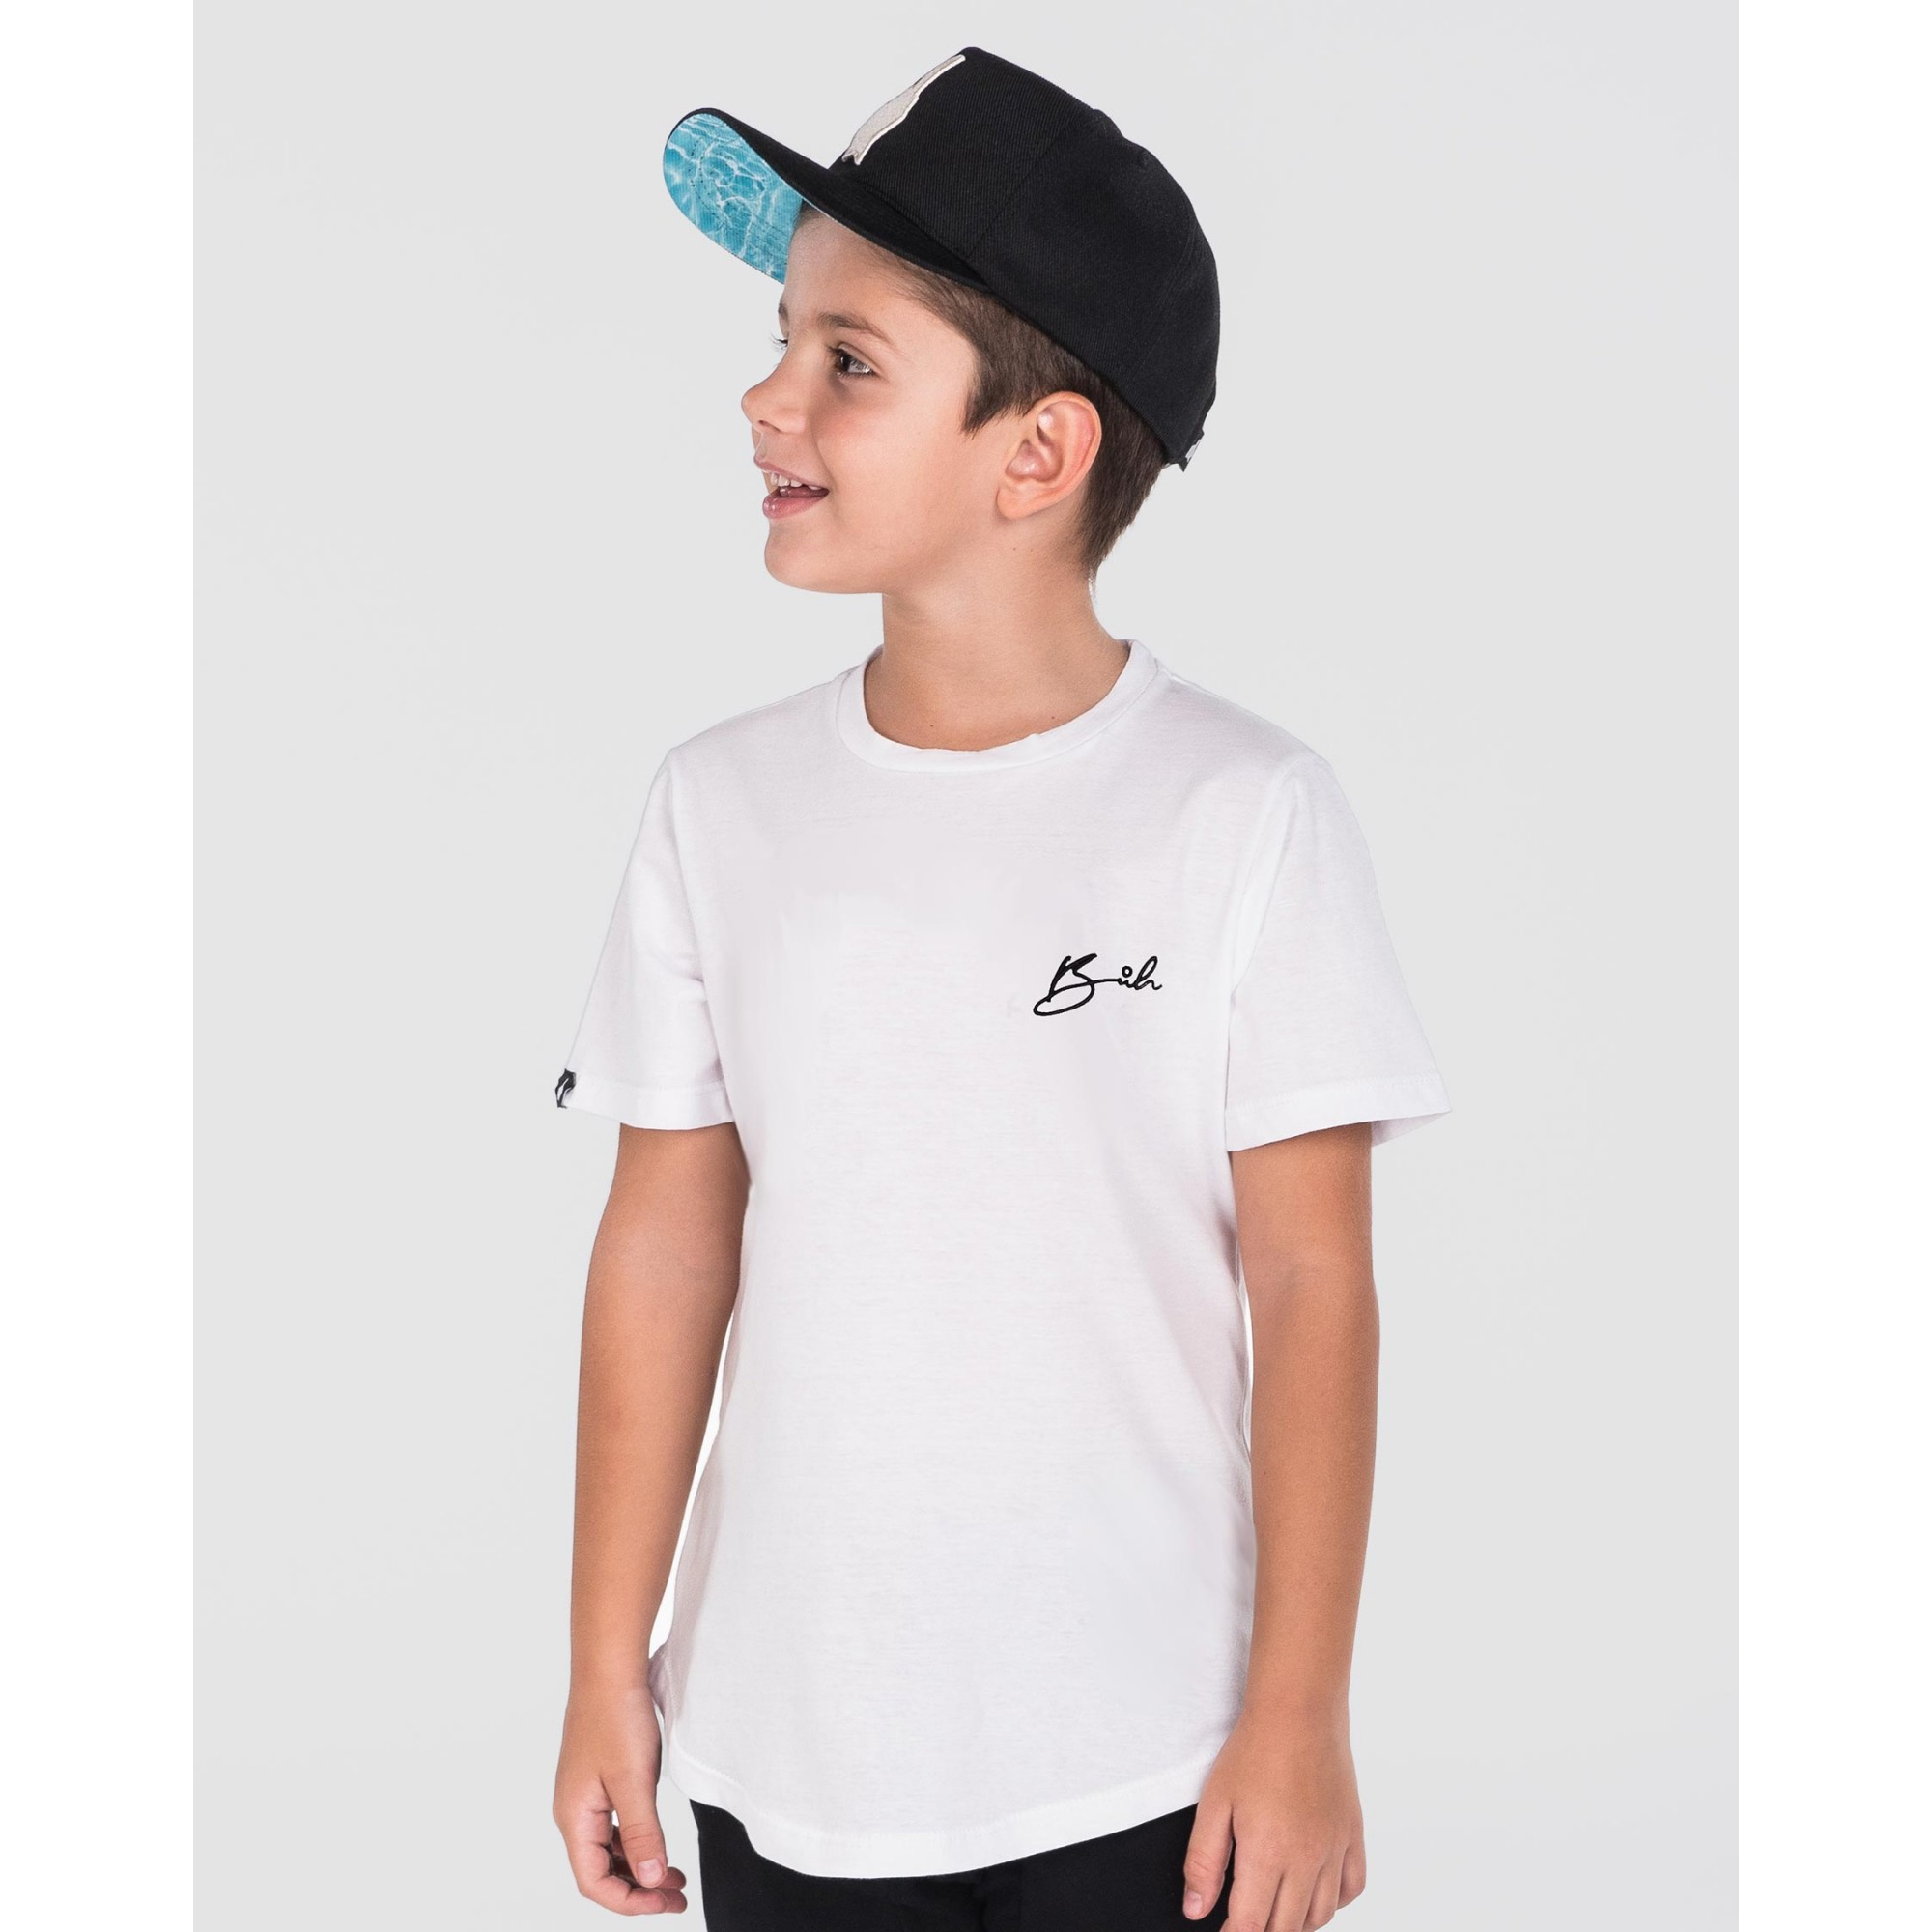 Camiseta Buh Kids Bordado White